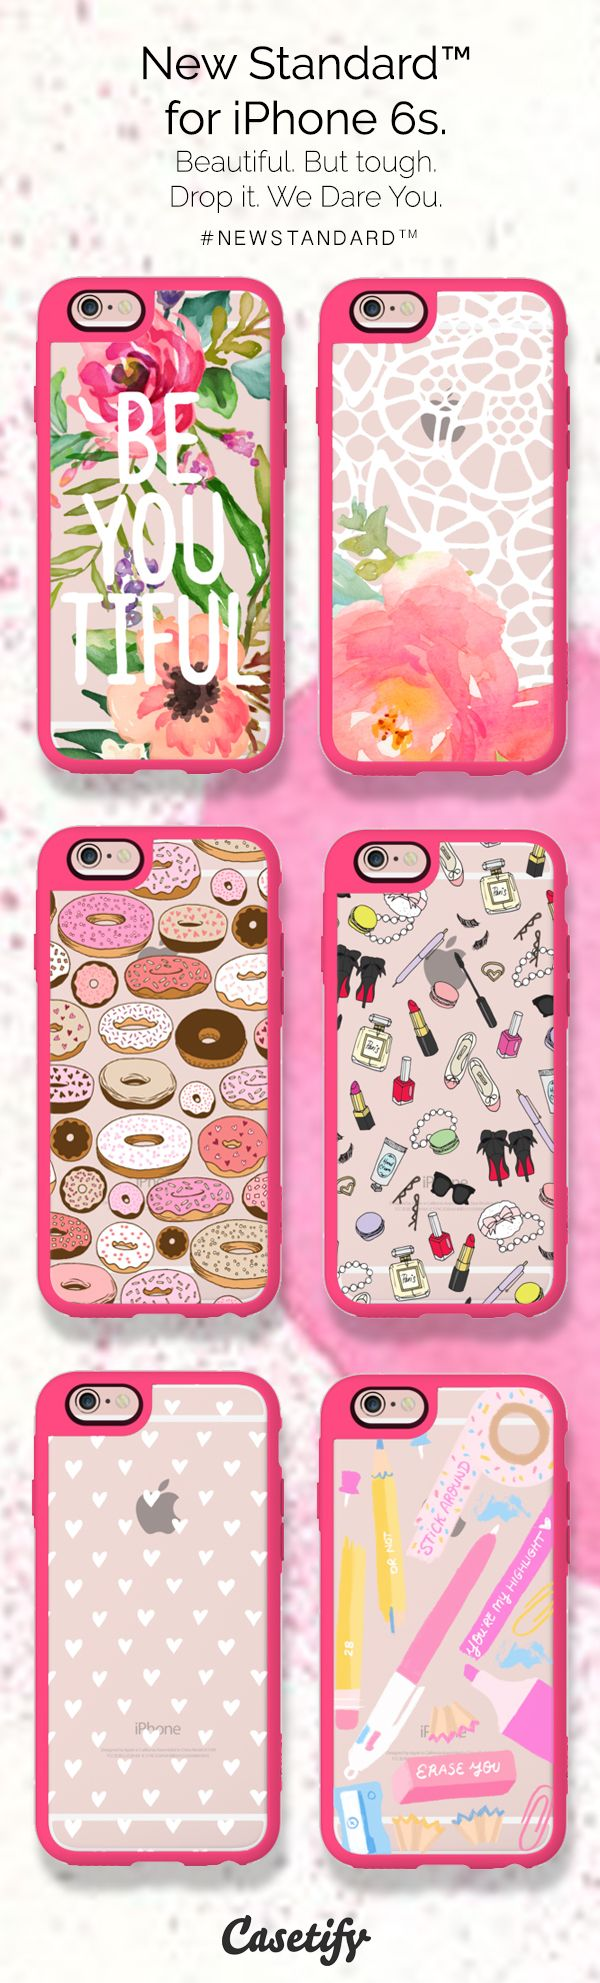 On Wednesdays, we wear pink. Show Your Passion with the New Standard for the iPhone 6S/6S+. Order yours - $39.95  http://www.casetify.com/artworks/72L122TTV8